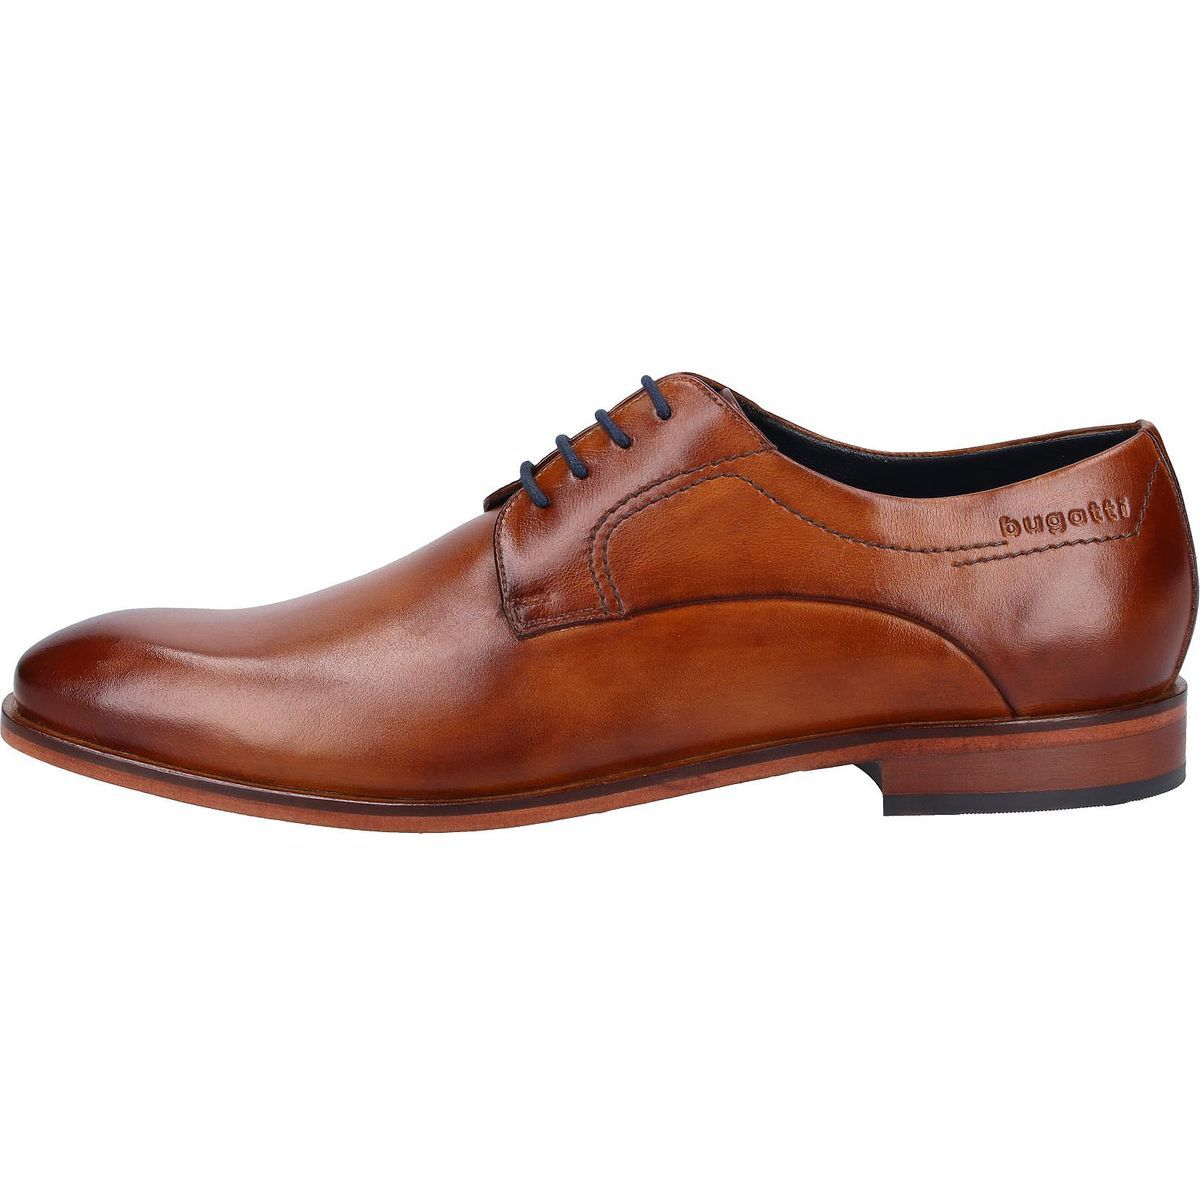 Chaussures Basses Cuir Verni Taille : 41;42;43;44;45;46